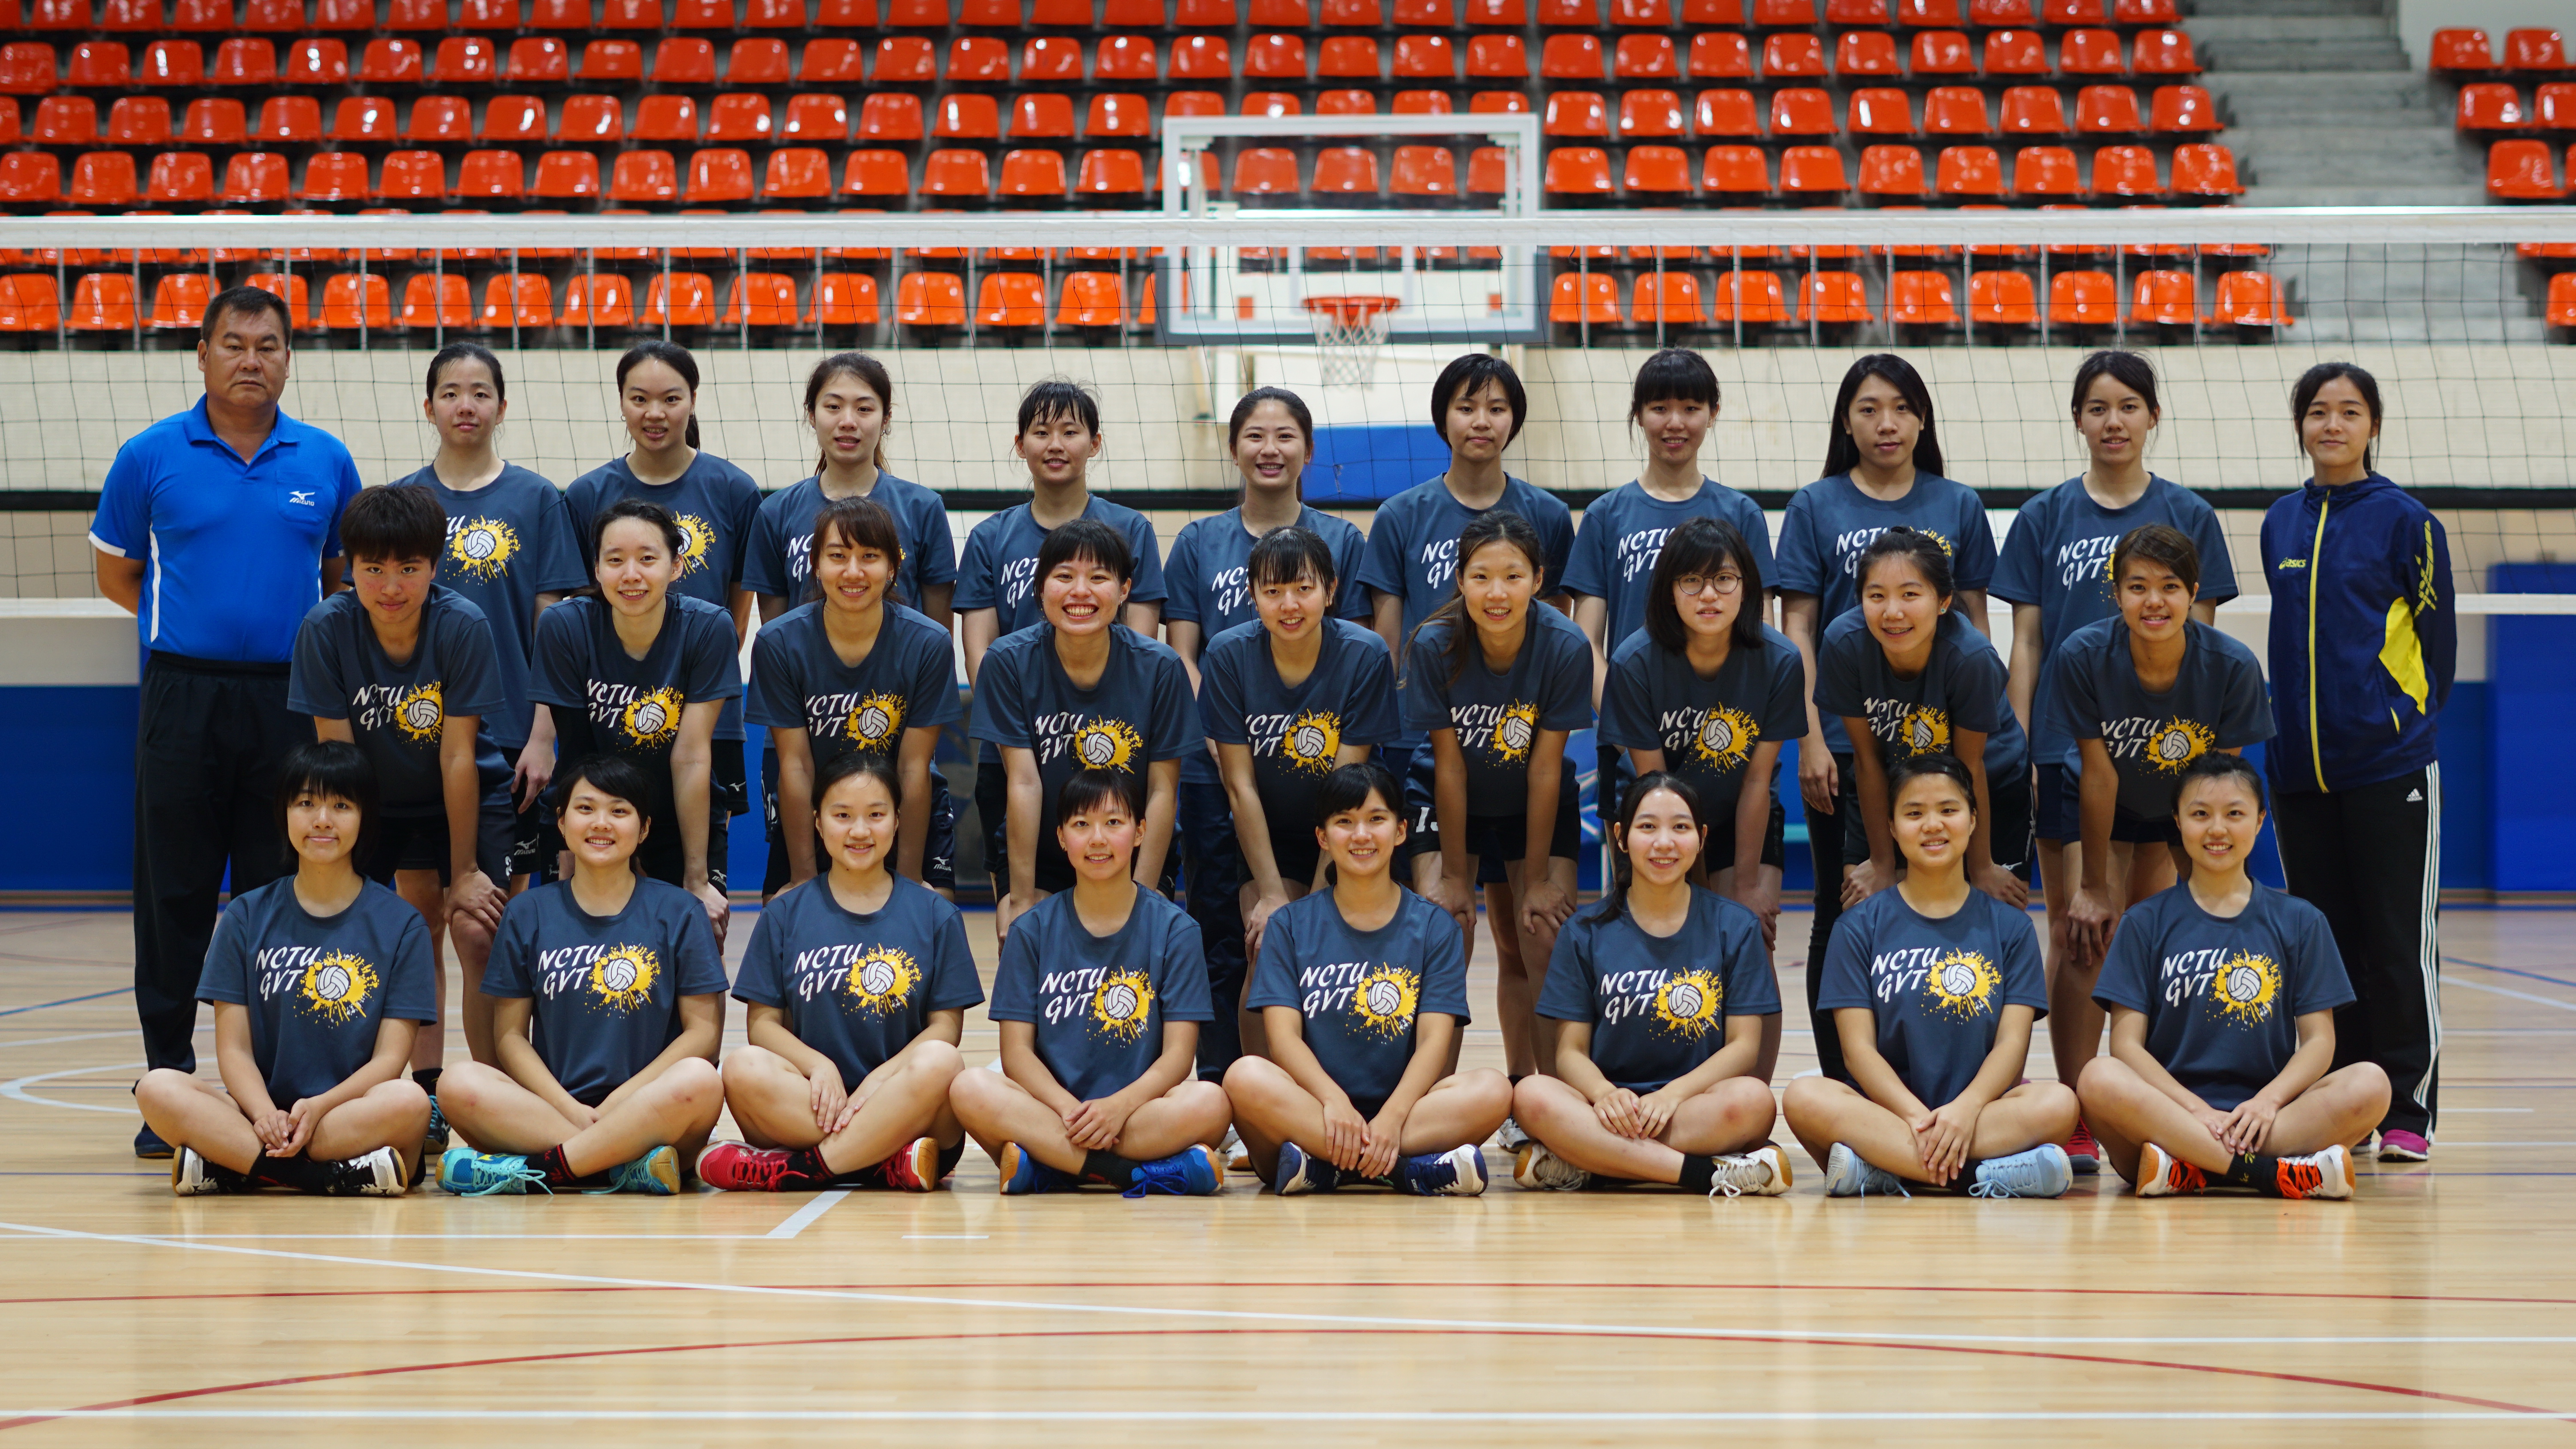 NCTU Women Volleyball Team Representative - 6th place